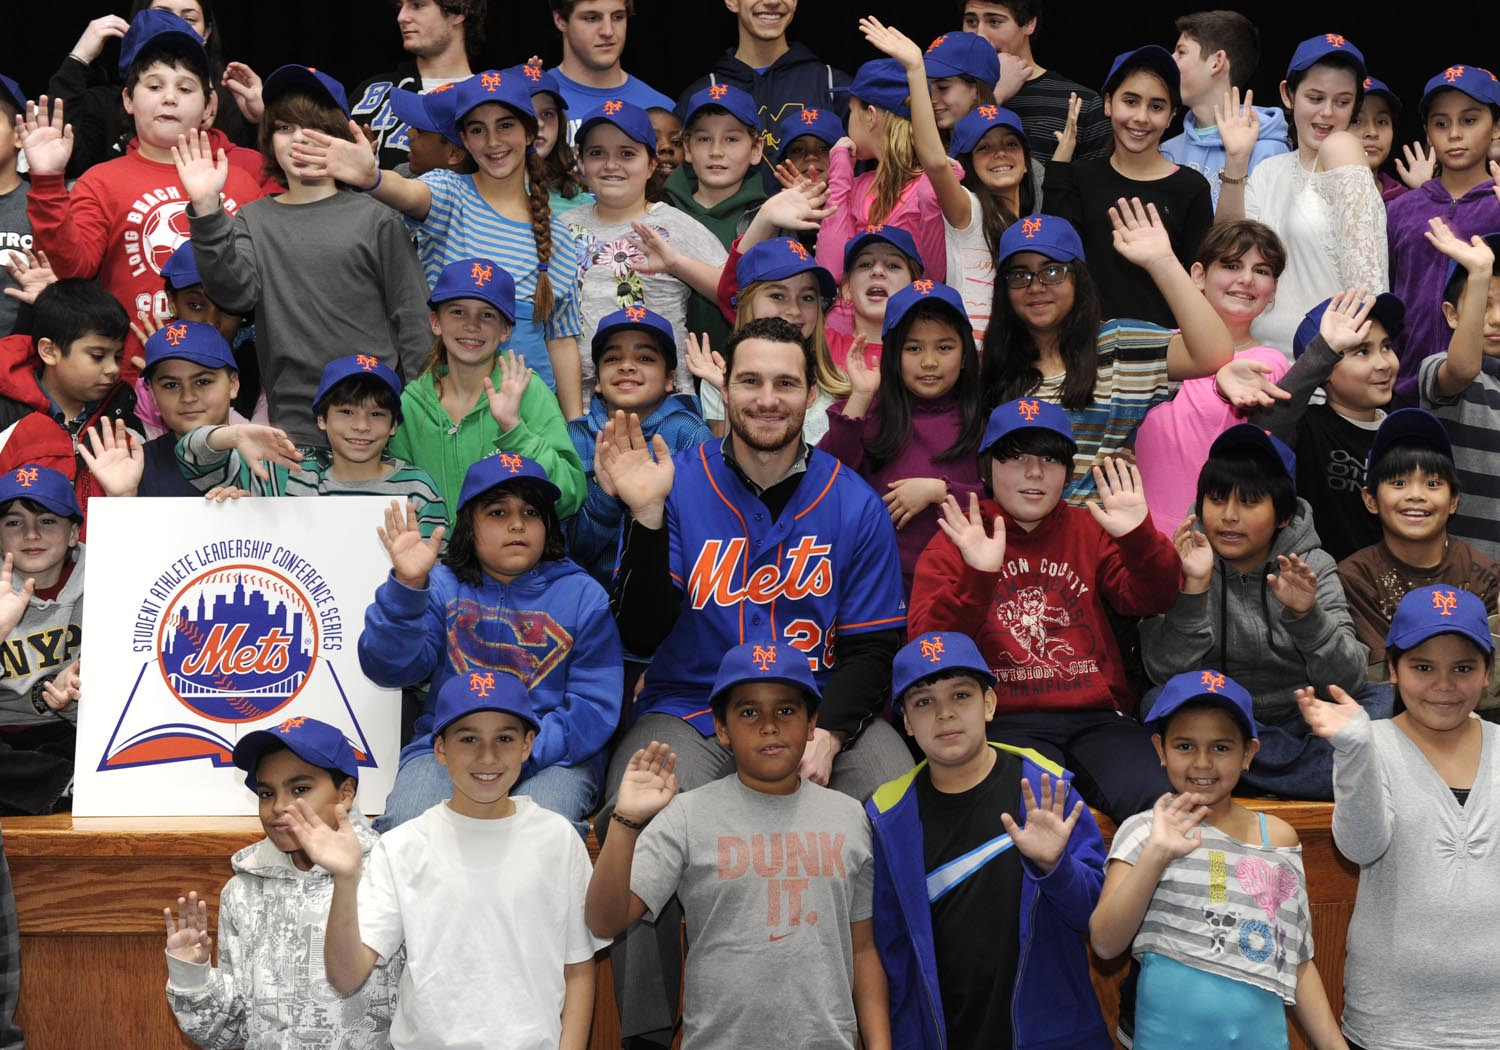 NY Met Daniel Murphy on a Visitation